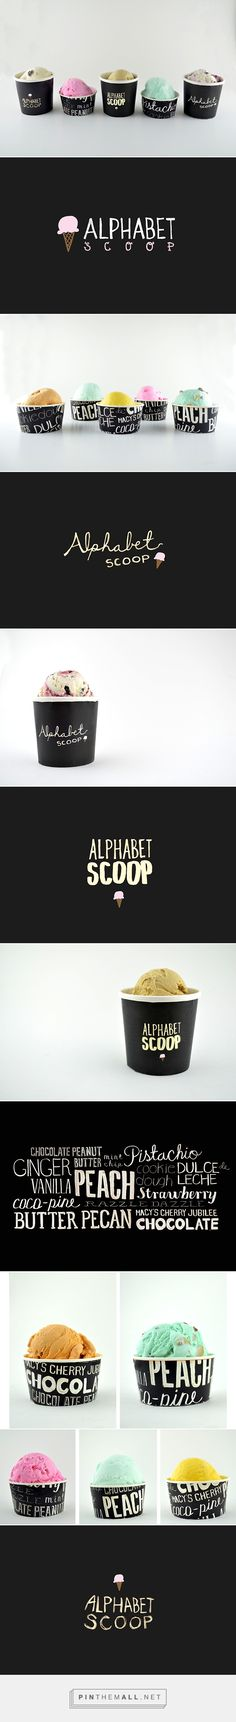 Alphabet Scoop Ice Cream Packaging Rebrand by Rebecca Lim | Fivestar Branding – Design and Branding Agency & Inspiration Gallery